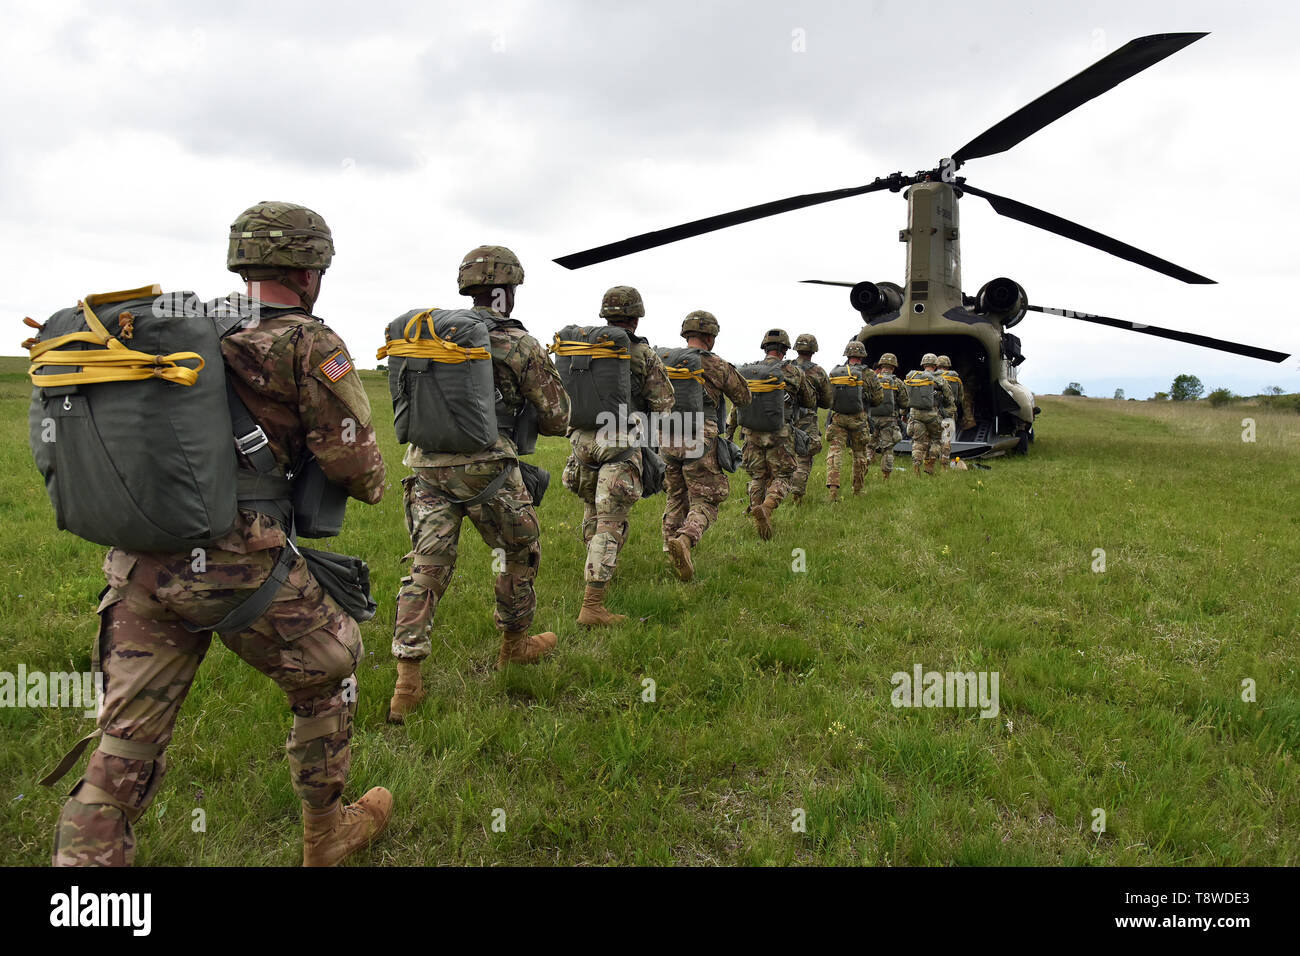 U.S. Army Paratroopers assigned to 54th Brigade Engineer Battalion, 173rd Airborne Brigade, prepare to load from a 12th Combat Aviation Brigade CH-47 Chinook helicopter, at Juliet Drop Zone, Pordenone, Italy, during airborne operation, May 9, 2019. The 173rd Airborne Brigade is the U.S. Army's Contingency Response Force in Europe, capable of projecting ready forces anywhere in the U.S. European, Africa or Central Commands' areas of responsibility. (U.S. Army's Photos by Paolo Bovo) - Stock Image